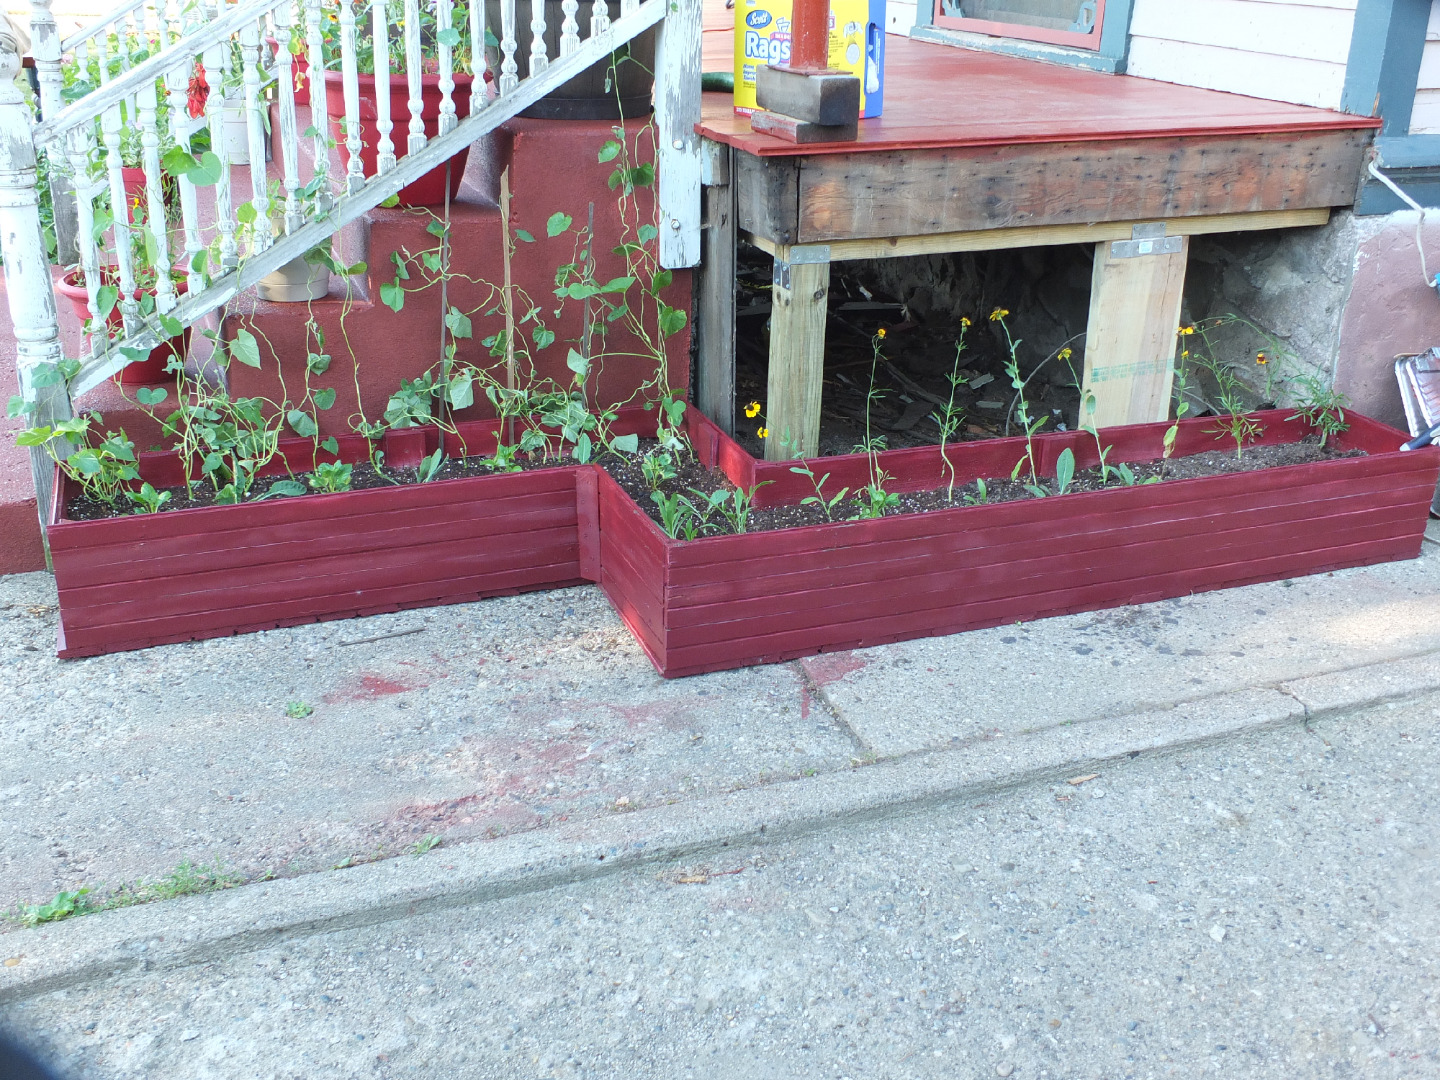 Picture of Custom Shaped Planter Box Out of Old Tounge-in-grove Boards